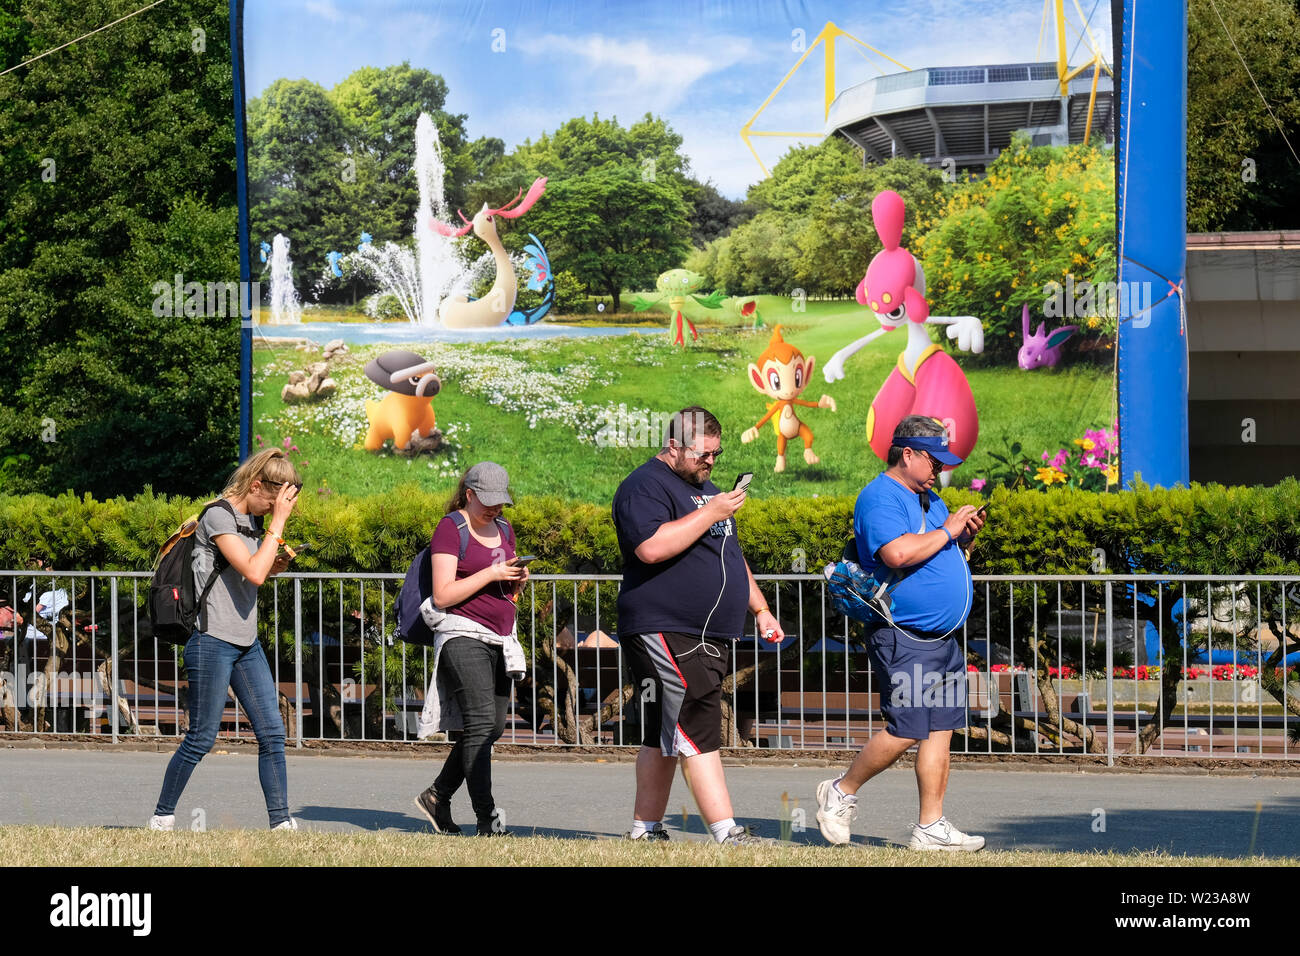 06 05 2019 Stock Photos & 06 05 2019 Stock Images - Alamy